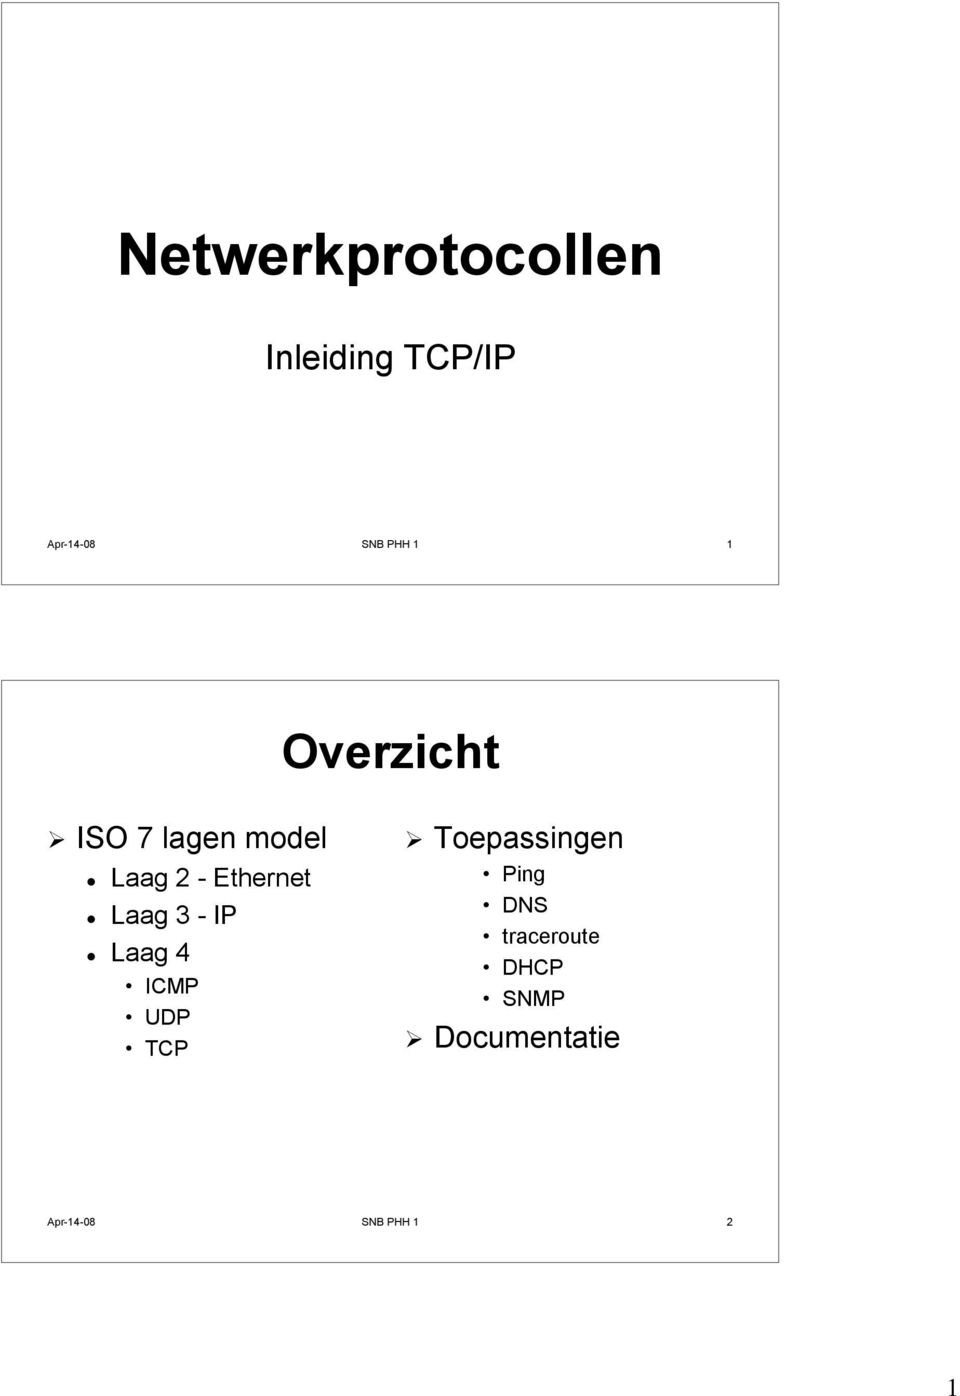 Laag 3 - IP Laag 4 ICMP UDP TCP Toepassingen Ping DNS